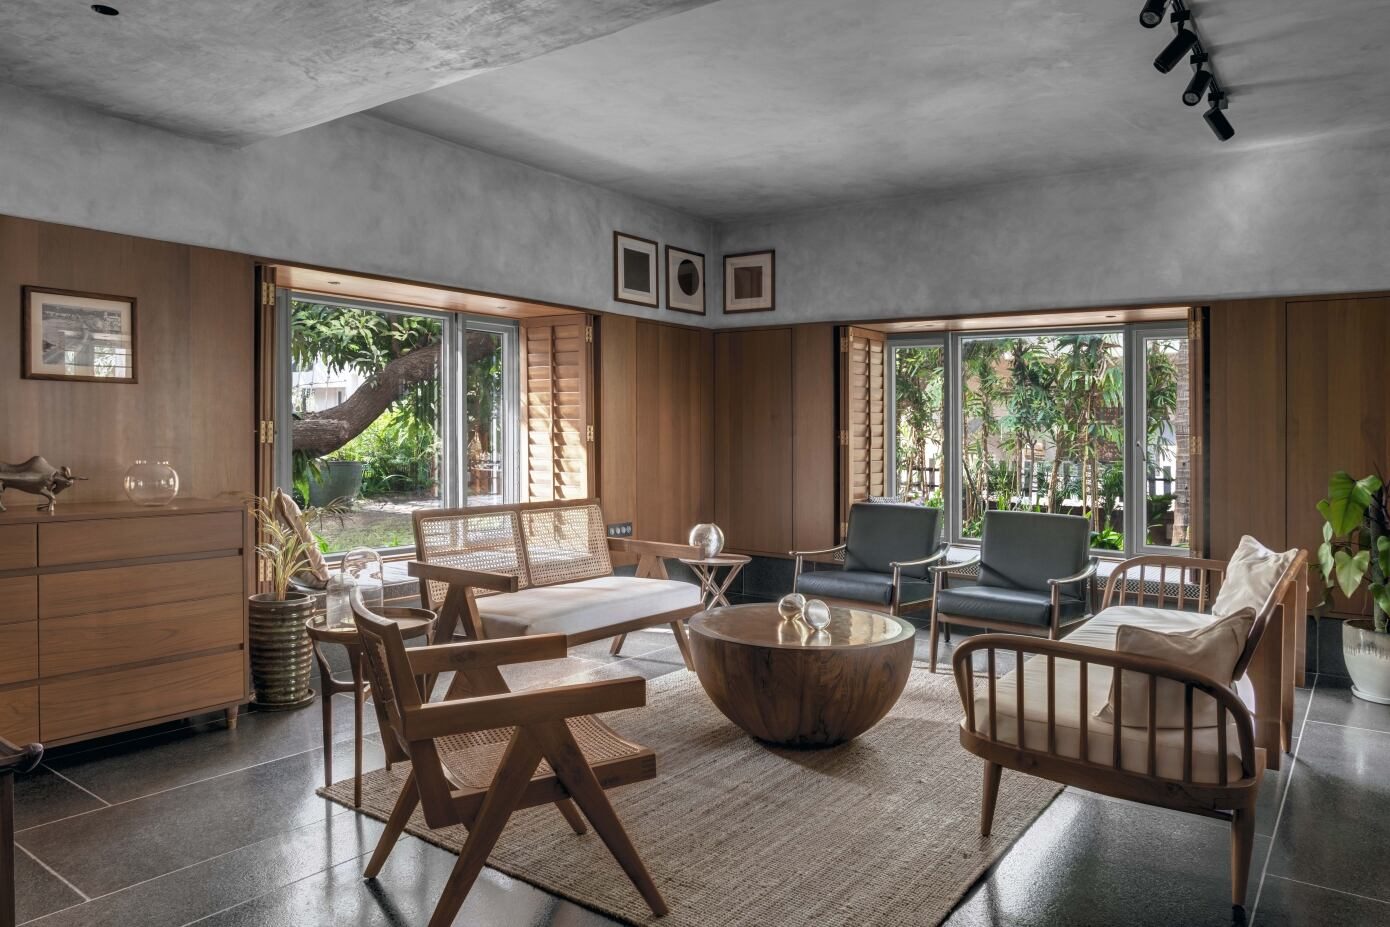 T House by Studio Course